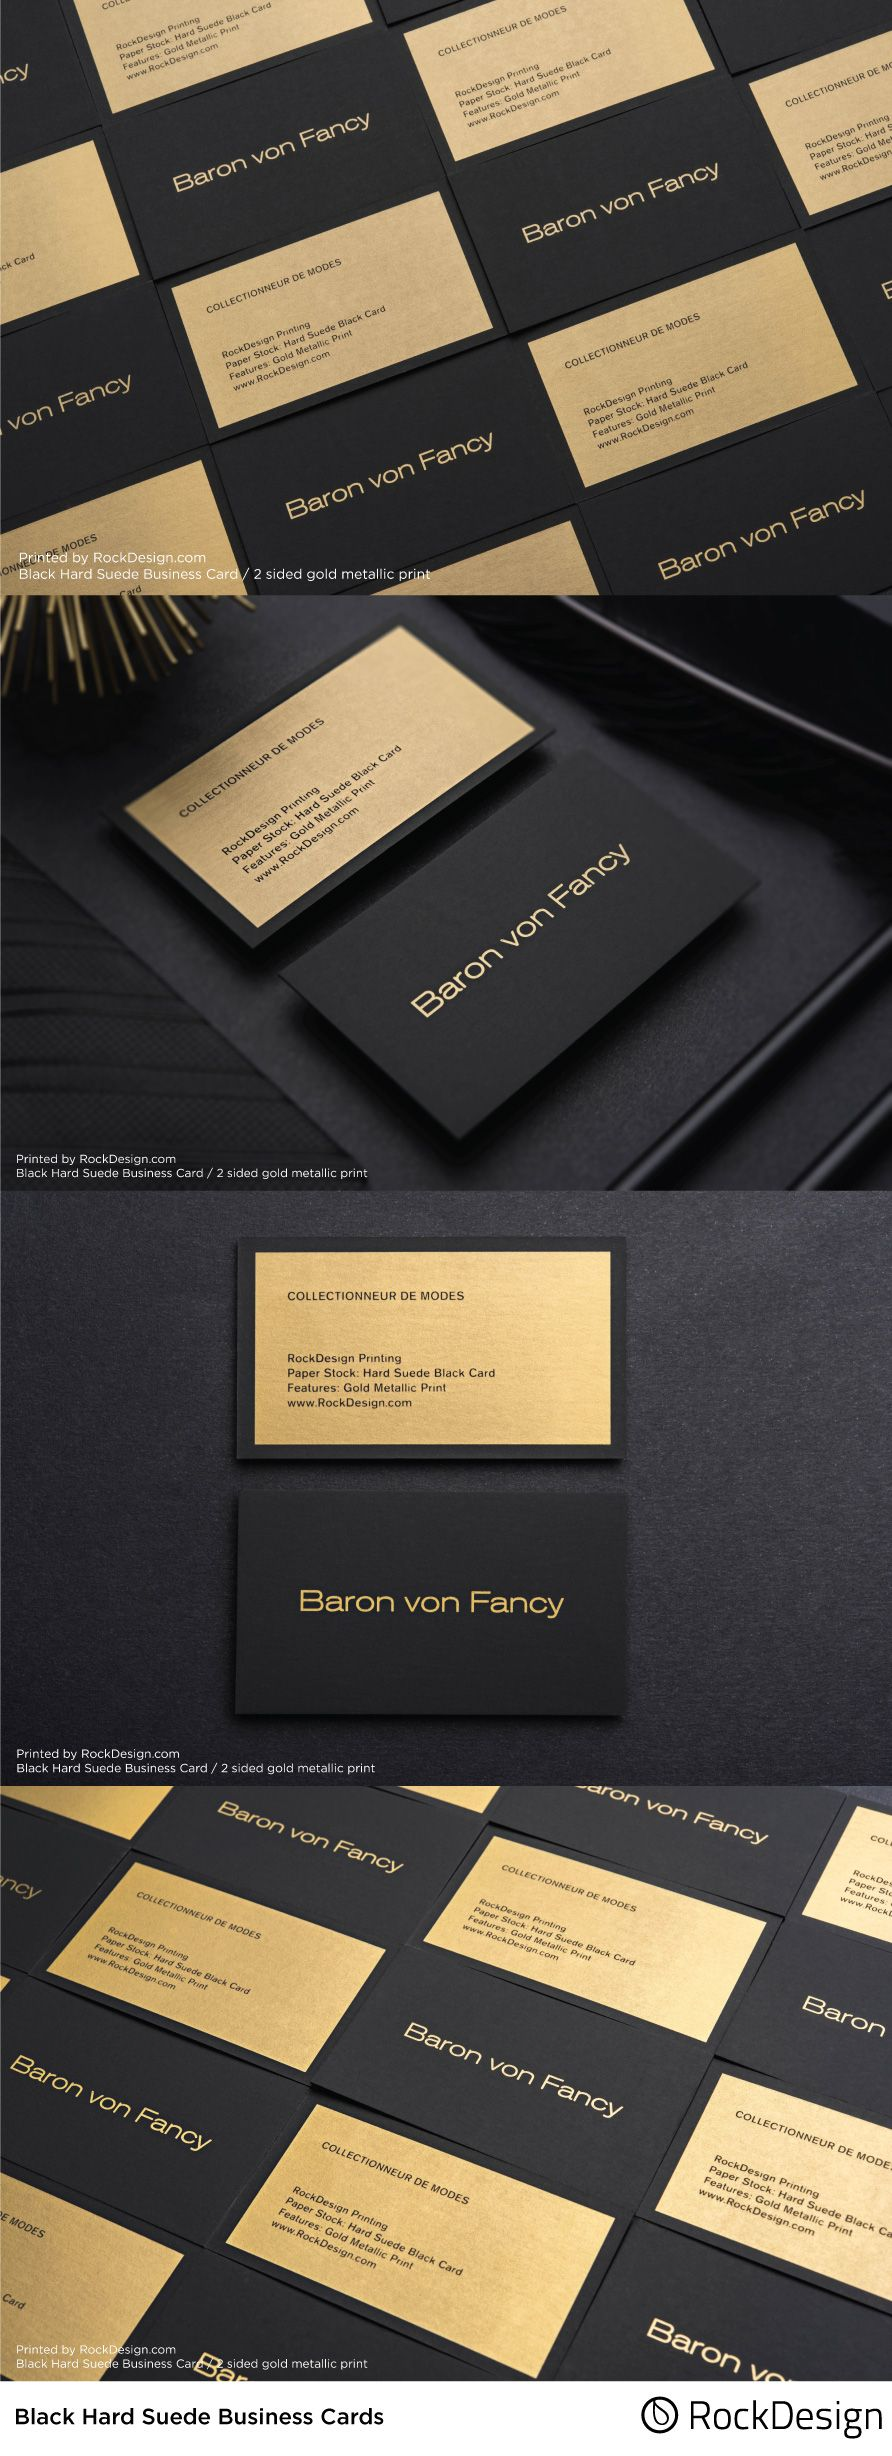 Elegant And Simplistic In Design Our Baron Von Fancy Card Is A Beautifully Balanc Luxury Business Cards Business Card Design Business Cards Creative Templates